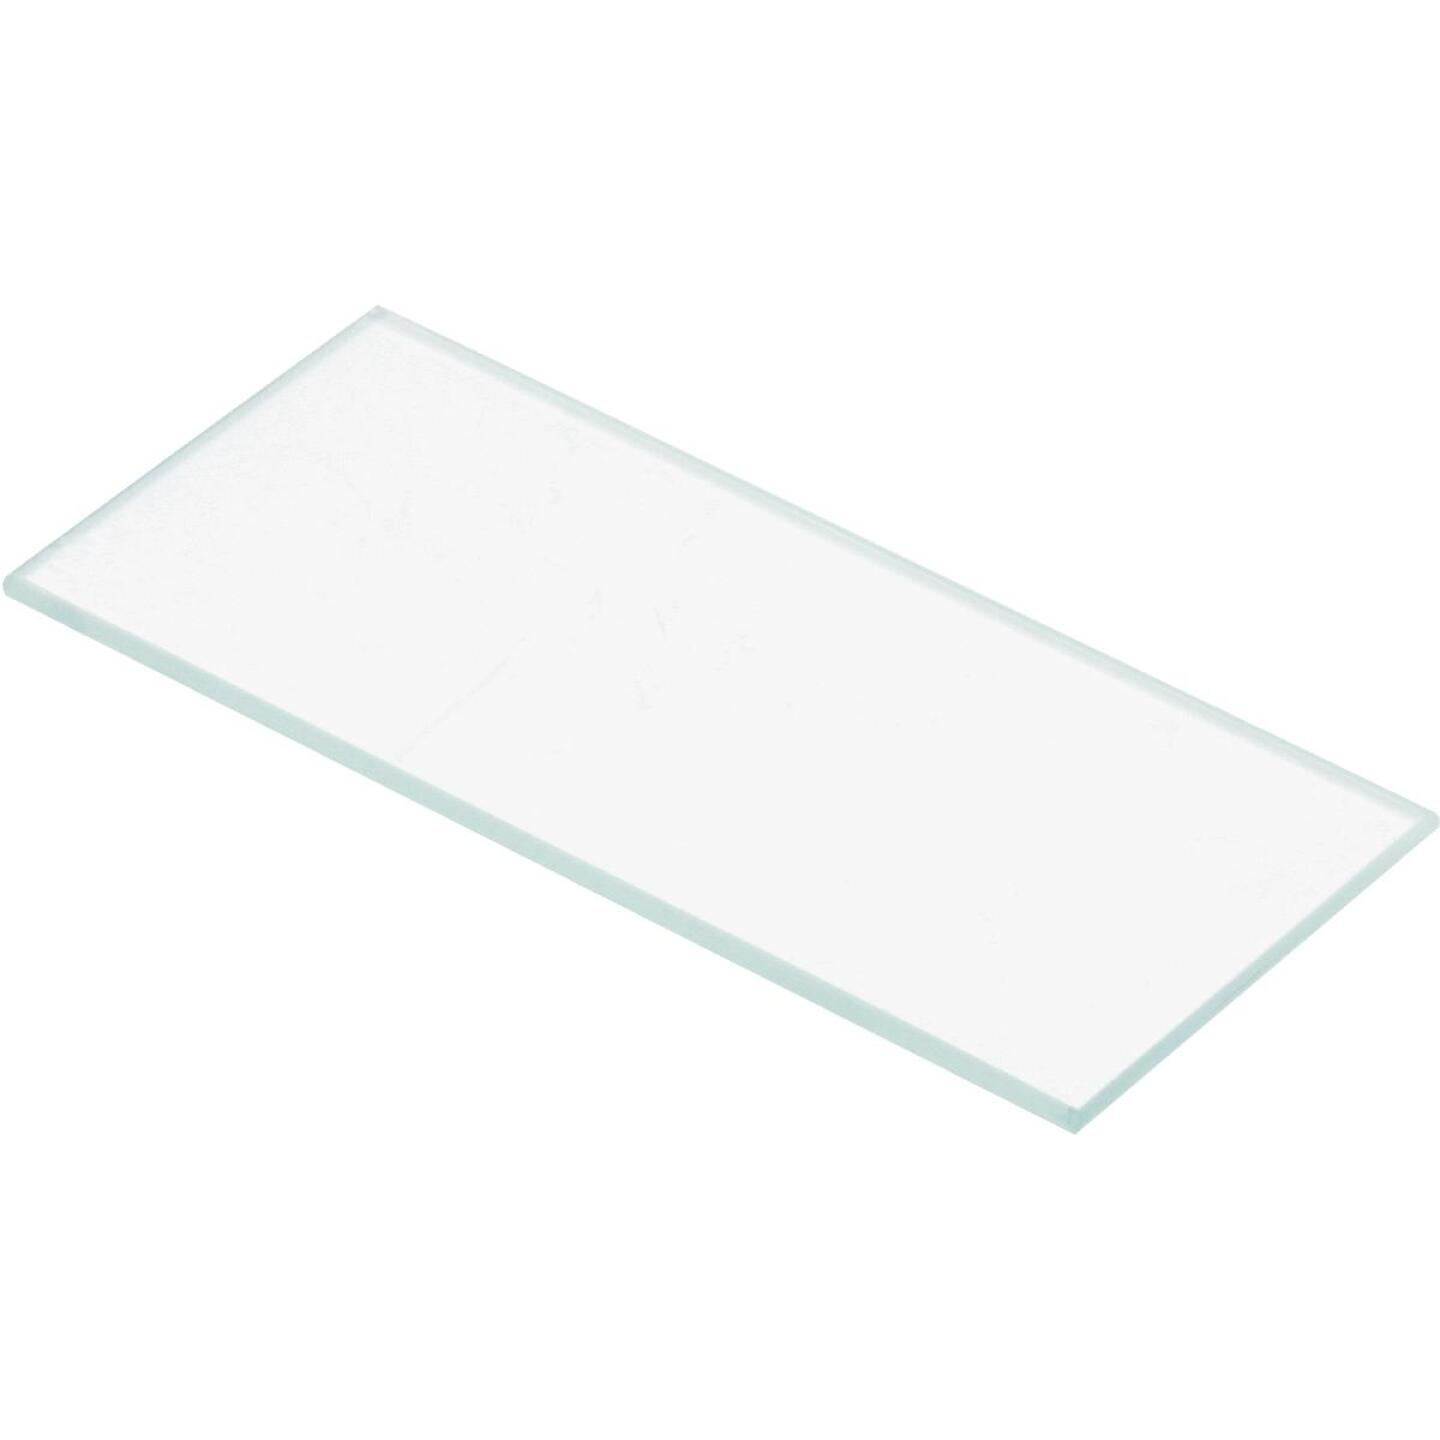 Forney Clear 2 In. x 4-1/4 In. Welding Lenses Image 1